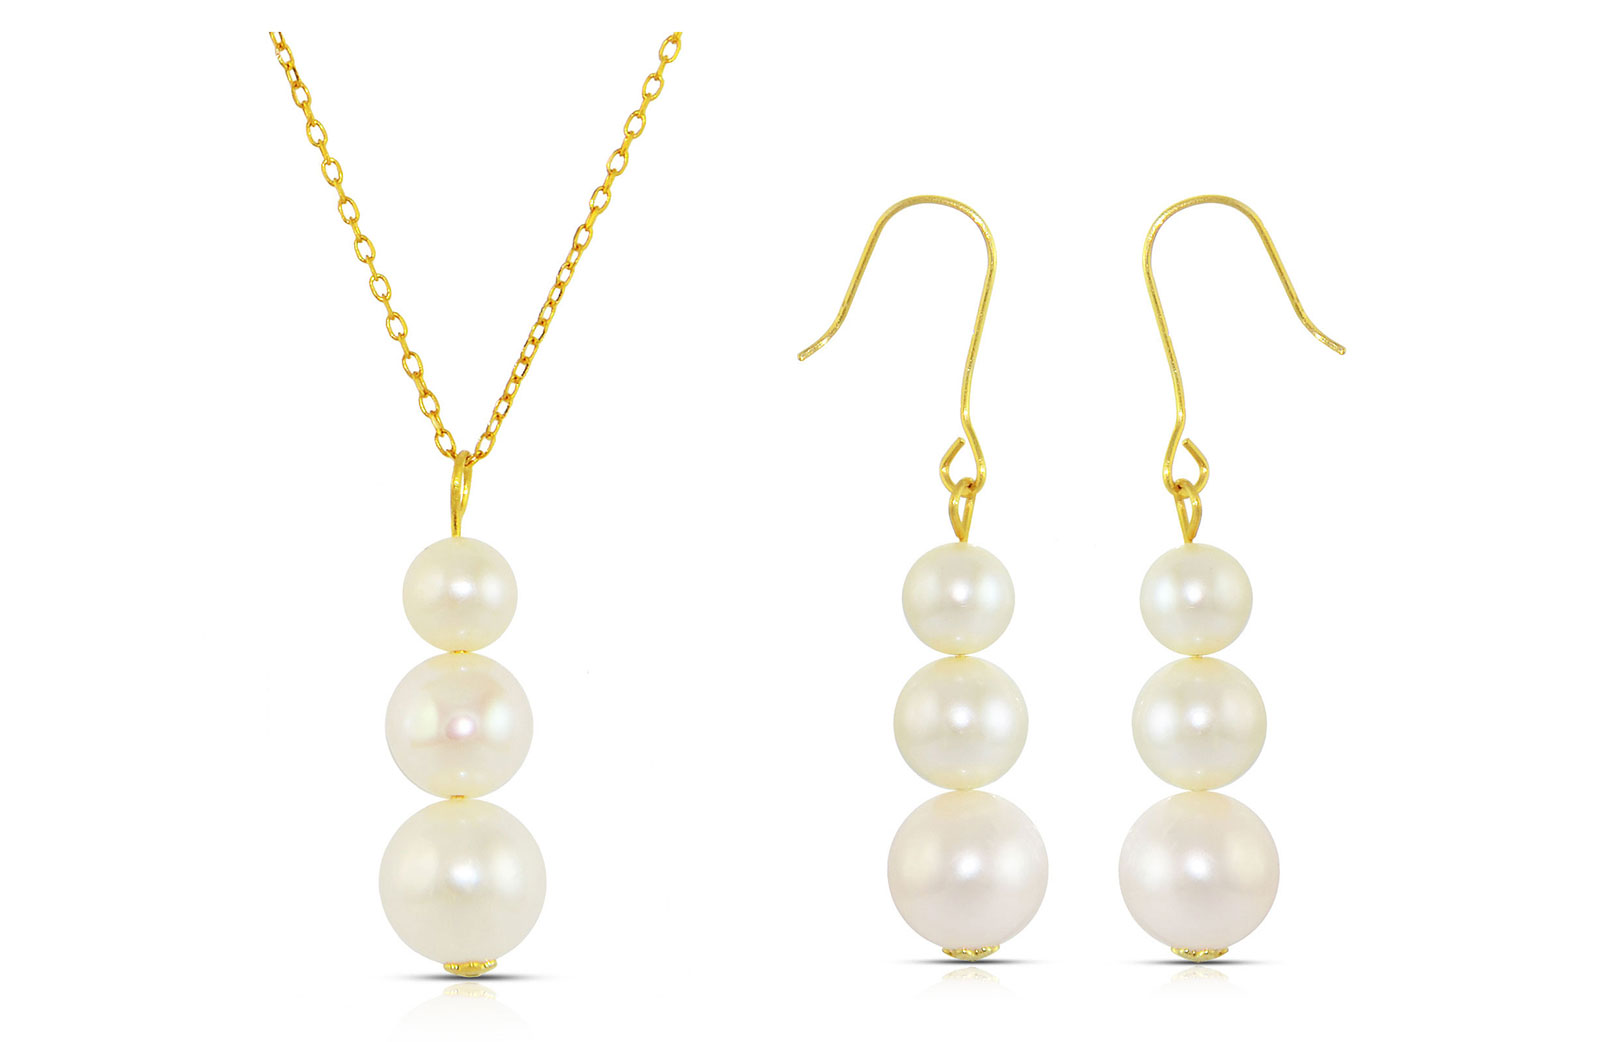 Vera Perla 18K Gold Genuine Pearls Journey Necklace and Earrings